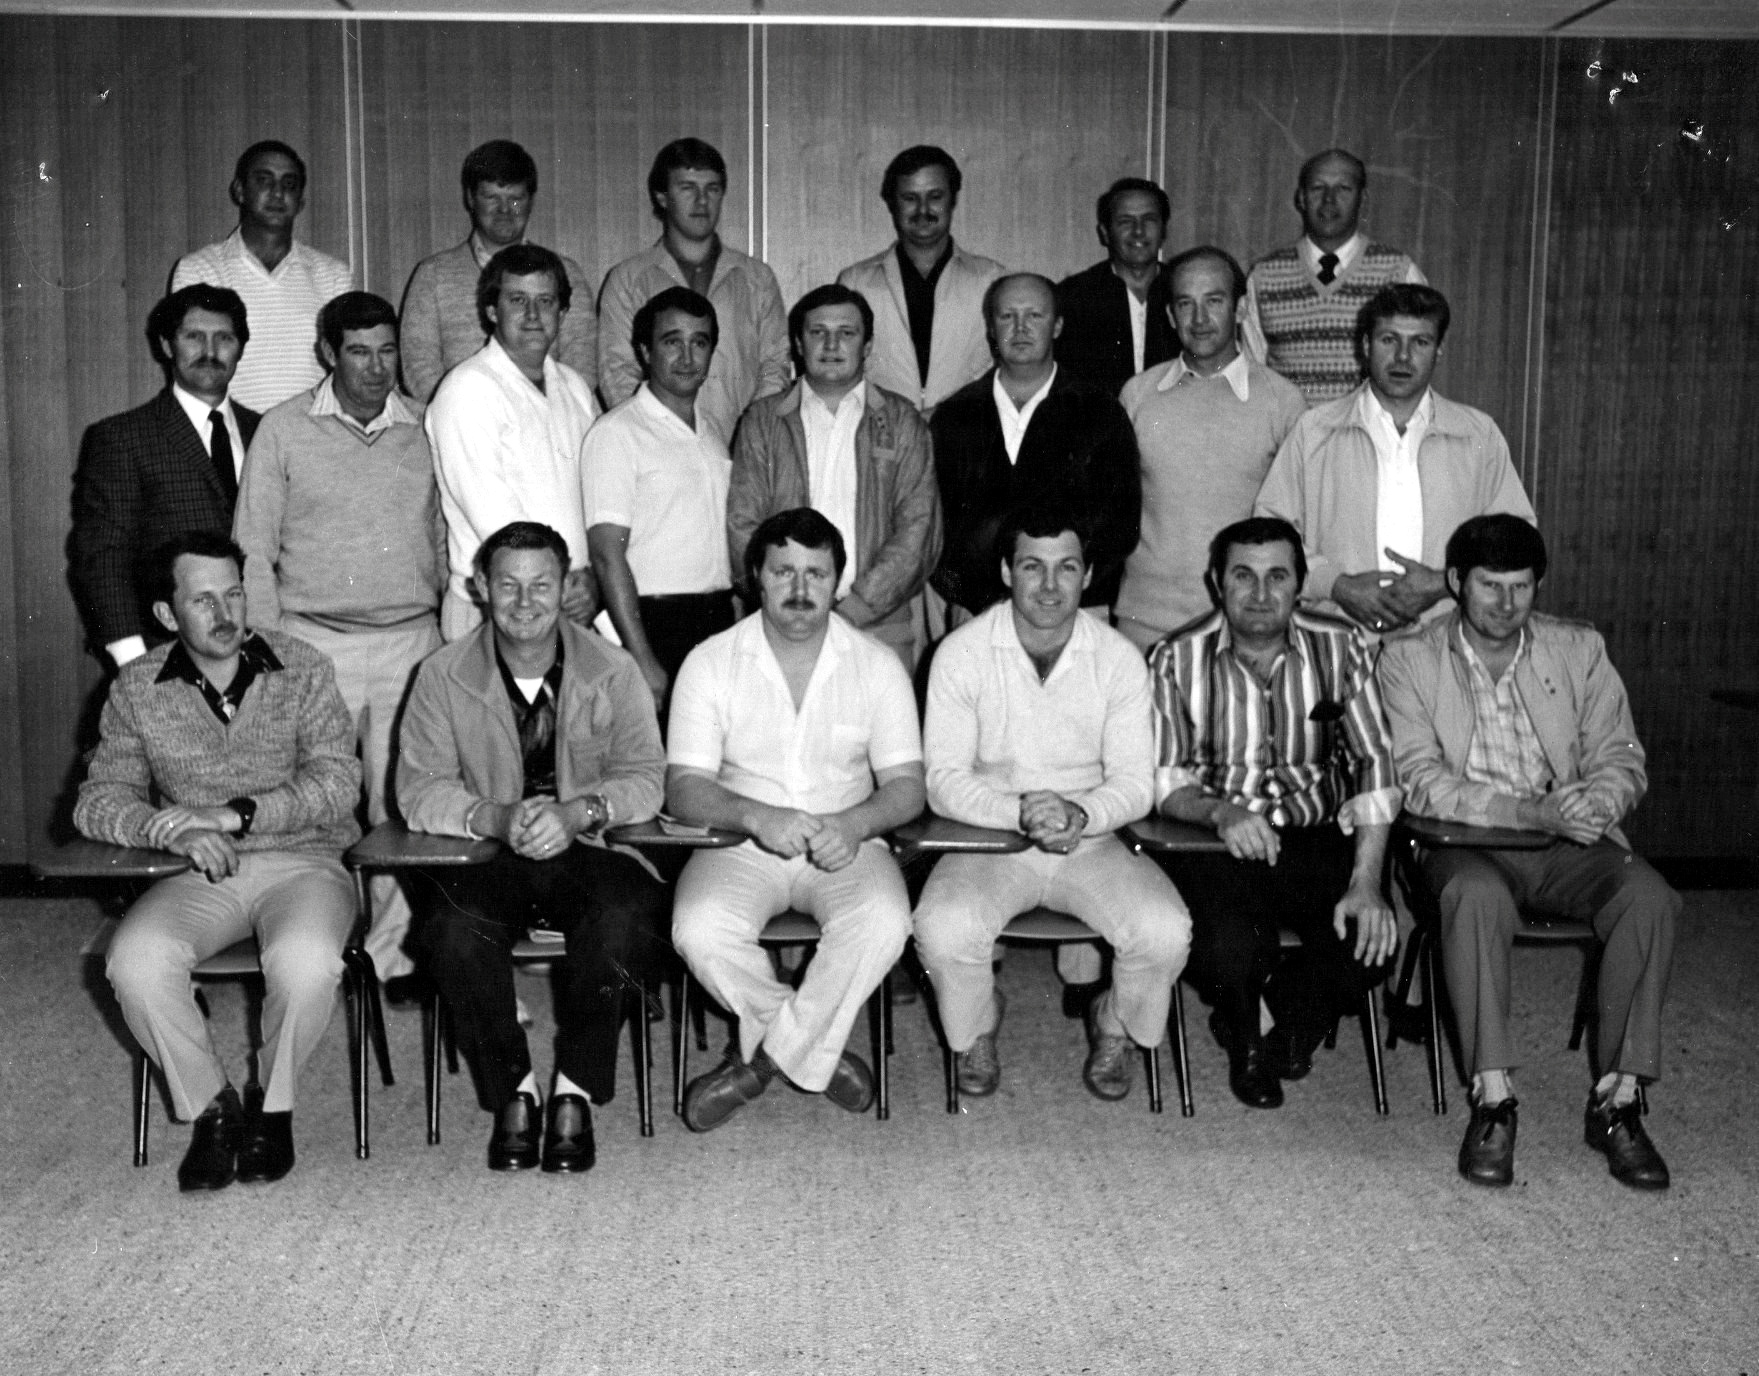 """Hank Vanderwaarden 2019 · Found an old photo of what I think was a Sergeants course or First Line Commanders course at Penrith Police Station around mid 1980s. Cant remember all the names but I will give it a try. Back row: Laurie Eddy, Greg Peterson, Warren Newton, Bob Murrell, Hank Vanderwaarden, Ron Blake. Middle row: John HAMER instructor, Ernie Jones, Gary Buckley, Ces Kearney, Ray Filewood, Dave Clouston, Alan Target, Helmut Myers. Front row: Kieron Power, John Findlater, Ron McGowan, Gordon Middlemisss, Gary Winchester, Mal Roser. </a> Hank Vanderwaarden<br />2019 ·<br />Found an old photo of what I think was a Sergeants course or First Line Commanders course at Penrith Police Station around mid 1980s. Can't remember all the names but I will give it a try. <strong>Back row</strong>: Laurie Eddy, Greg Peterson, Warren Newton, Bob Murrell, Hank Vanderwaarden, Ron Blake. <strong>Middle row</strong>: John HAMER - instructor, Ernie Jones, <strong><a href=""""https://www.australianpolice.com.au/gary-richard-buckley/"""" target=""""_blank"""" rel=""""noopener noreferrer"""">Gary Buckley</a></strong>, Ces Kearney, Ray Filewood, Dave Clouston, Alan Target, Helmut Myers. <strong>Front row</strong>: Kieron Power, John Findlater, <strong><a href=""""https://www.australianpolice.com.au/ronald-walter-mcgown/"""" target=""""_blank"""" rel=""""noopener noreferrer"""">Ron McGowan</a></strong>, Gordon Middlemisss, Gary Winchester, Mal Roser."""